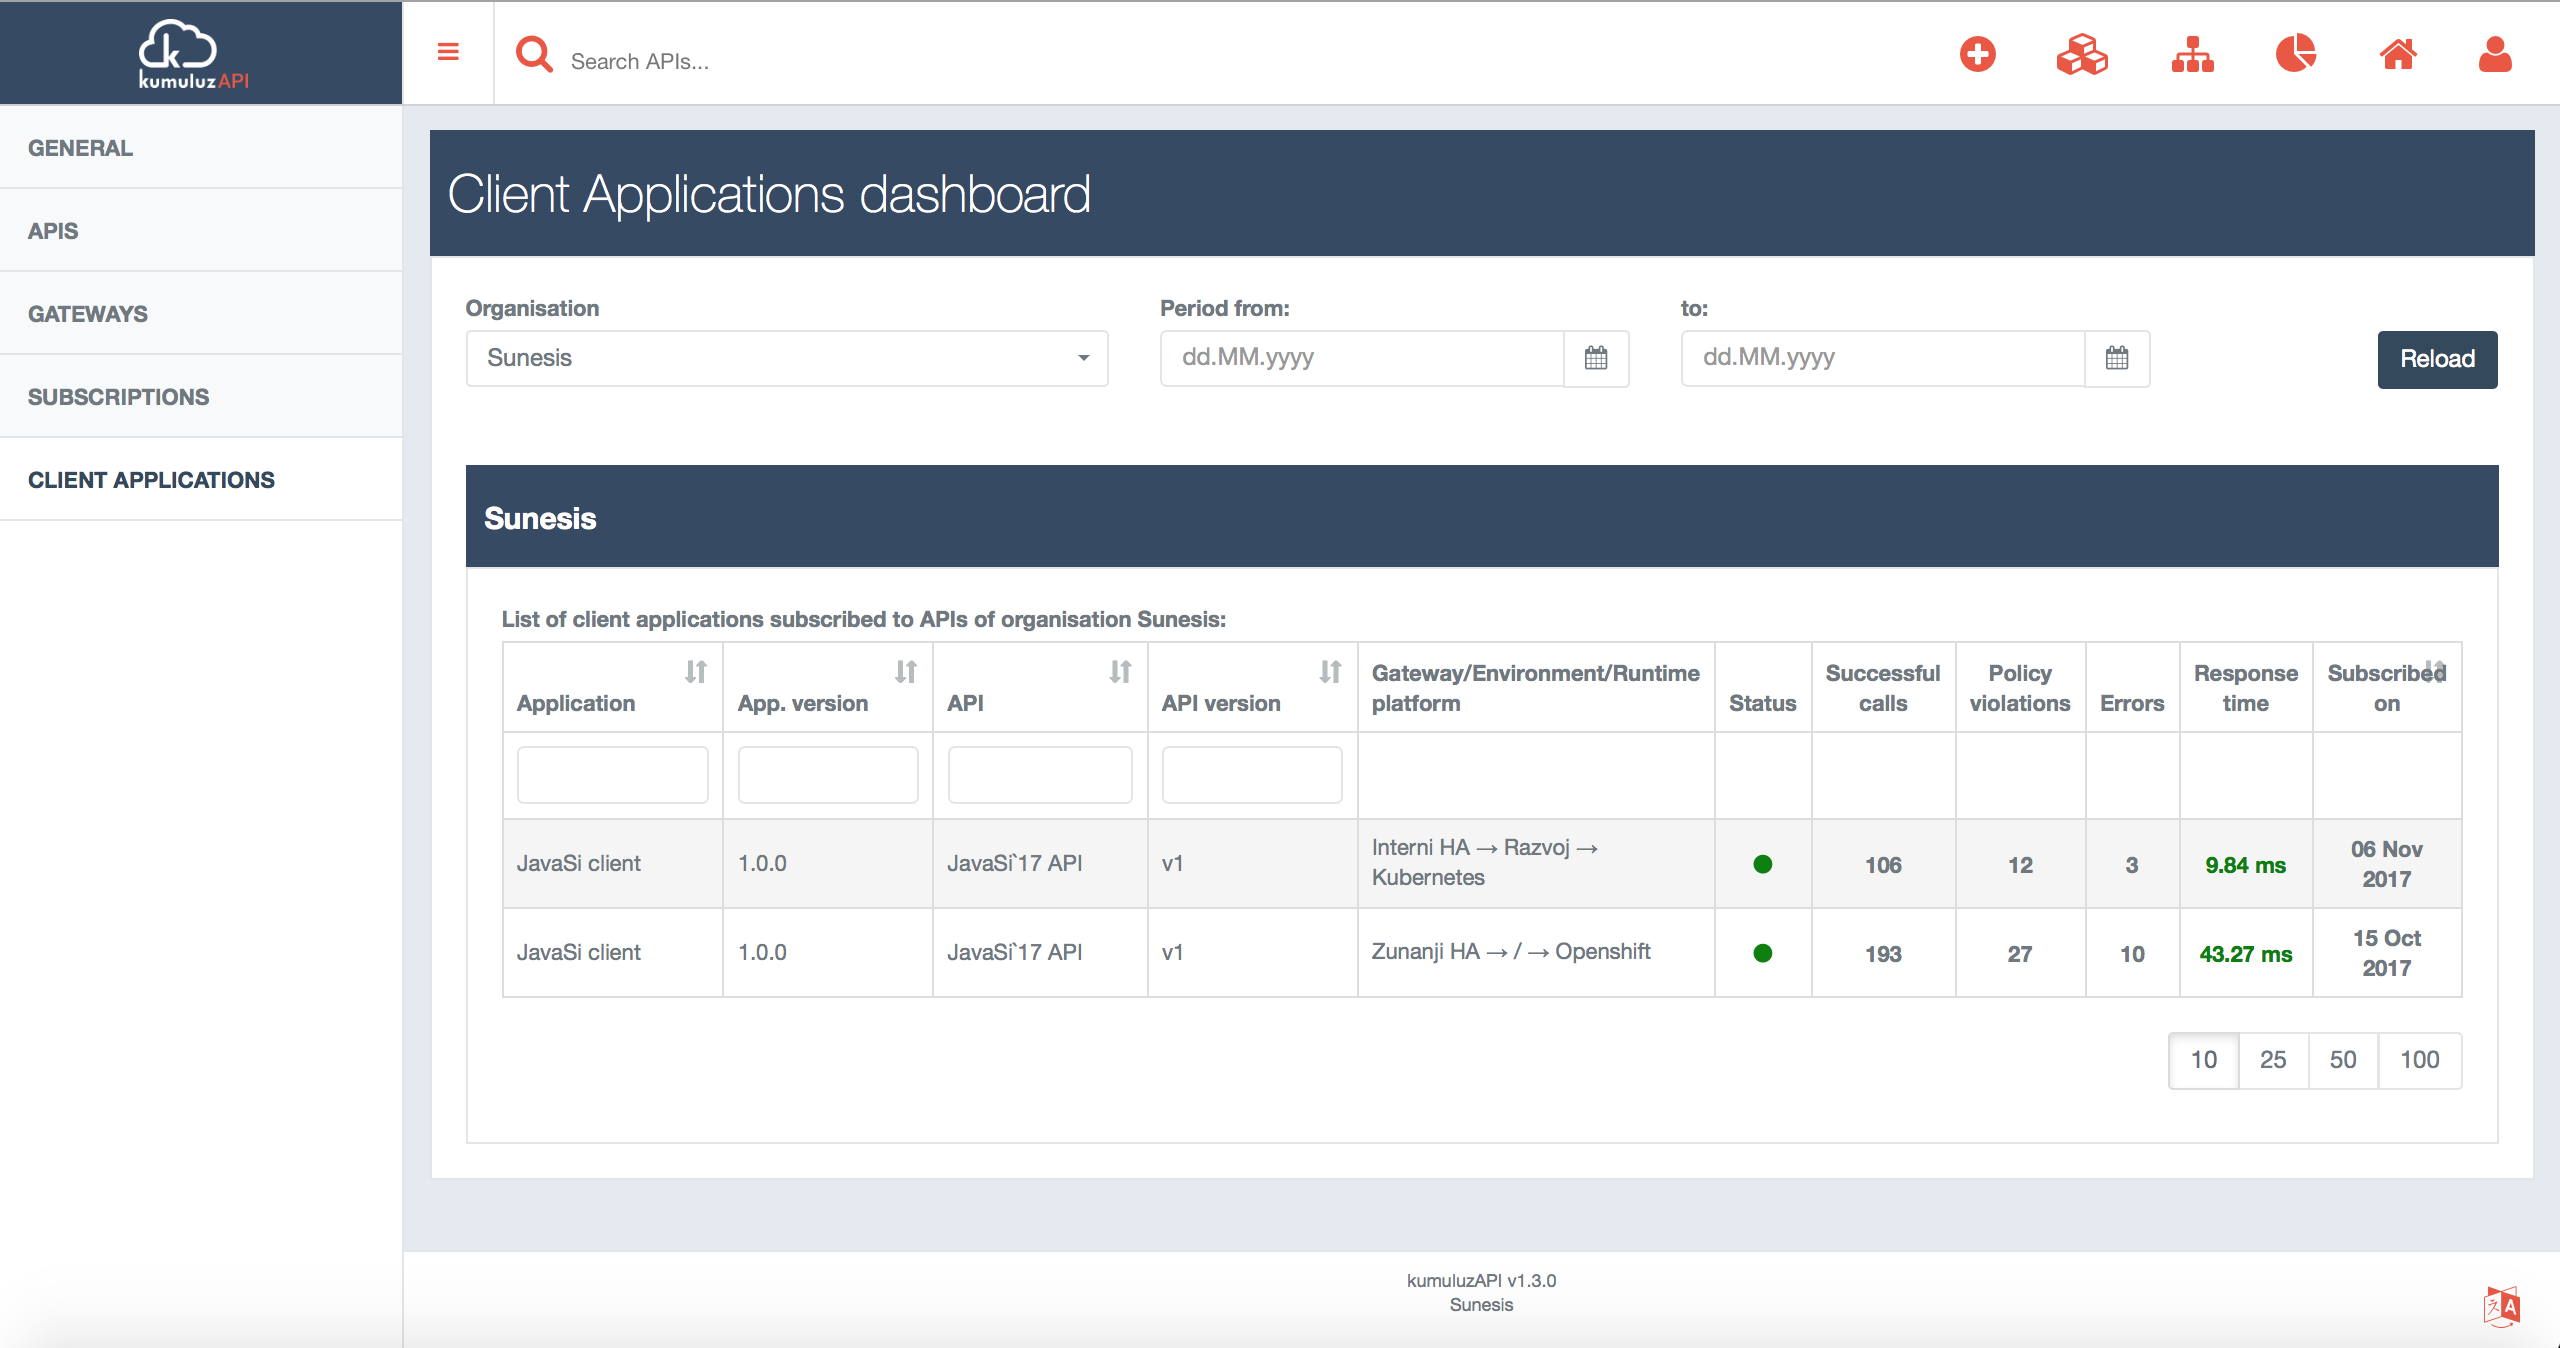 Client applications dashboard